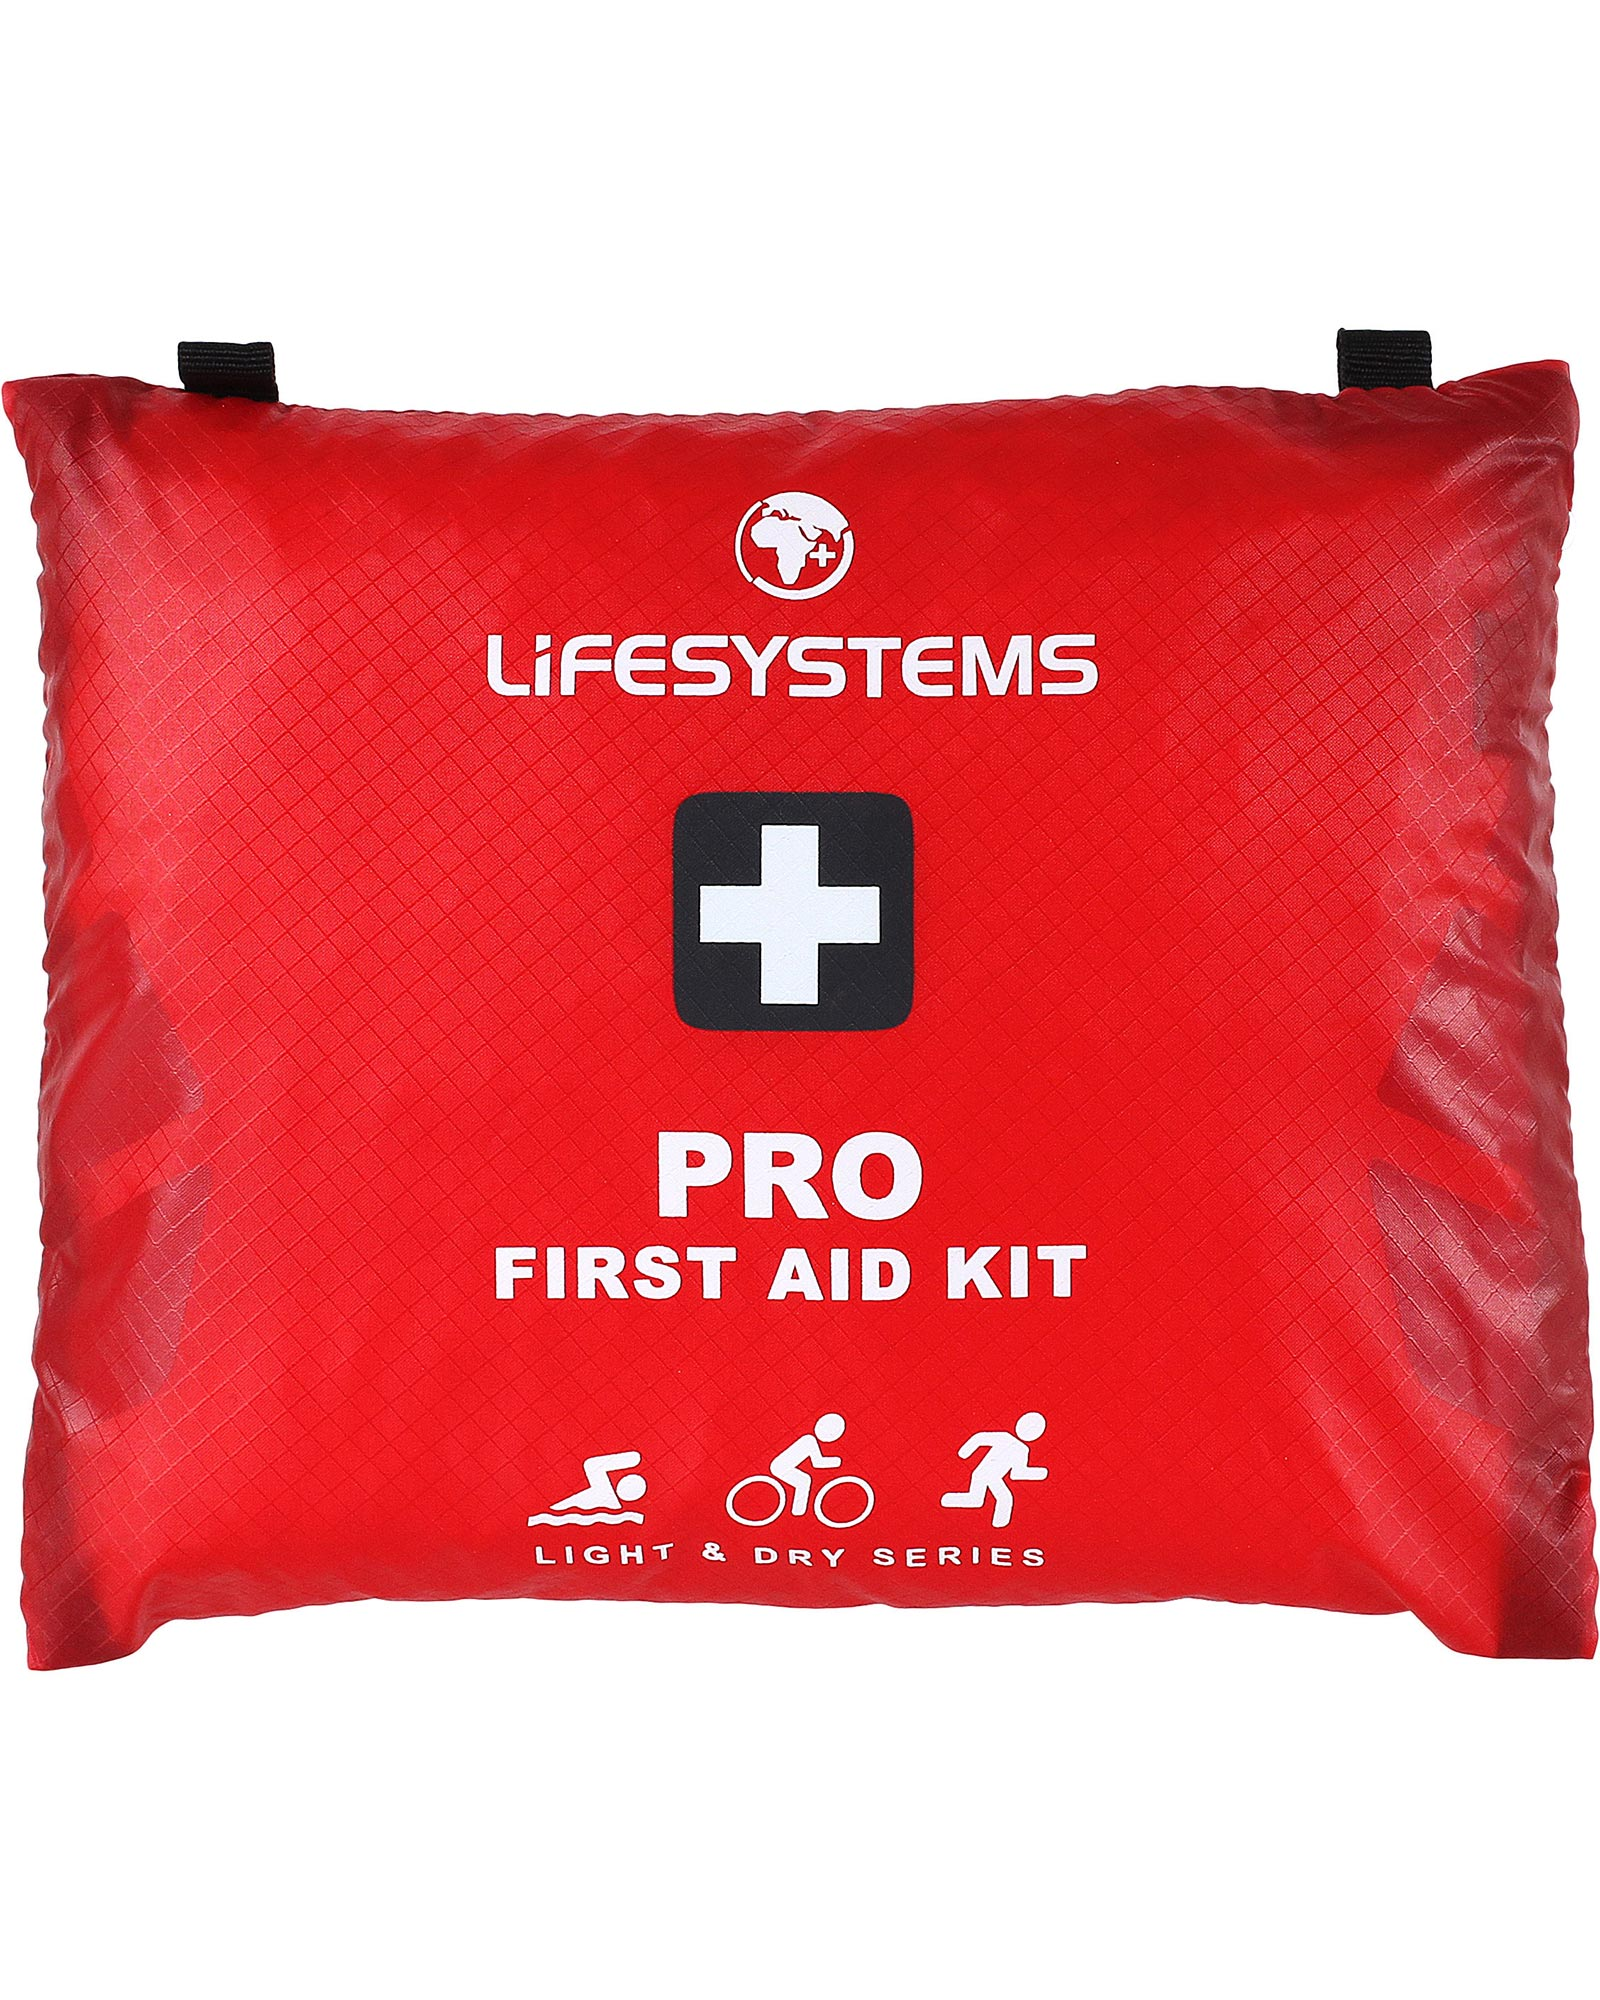 Lifesystems Light and Dry Pro First Aid Kit 0